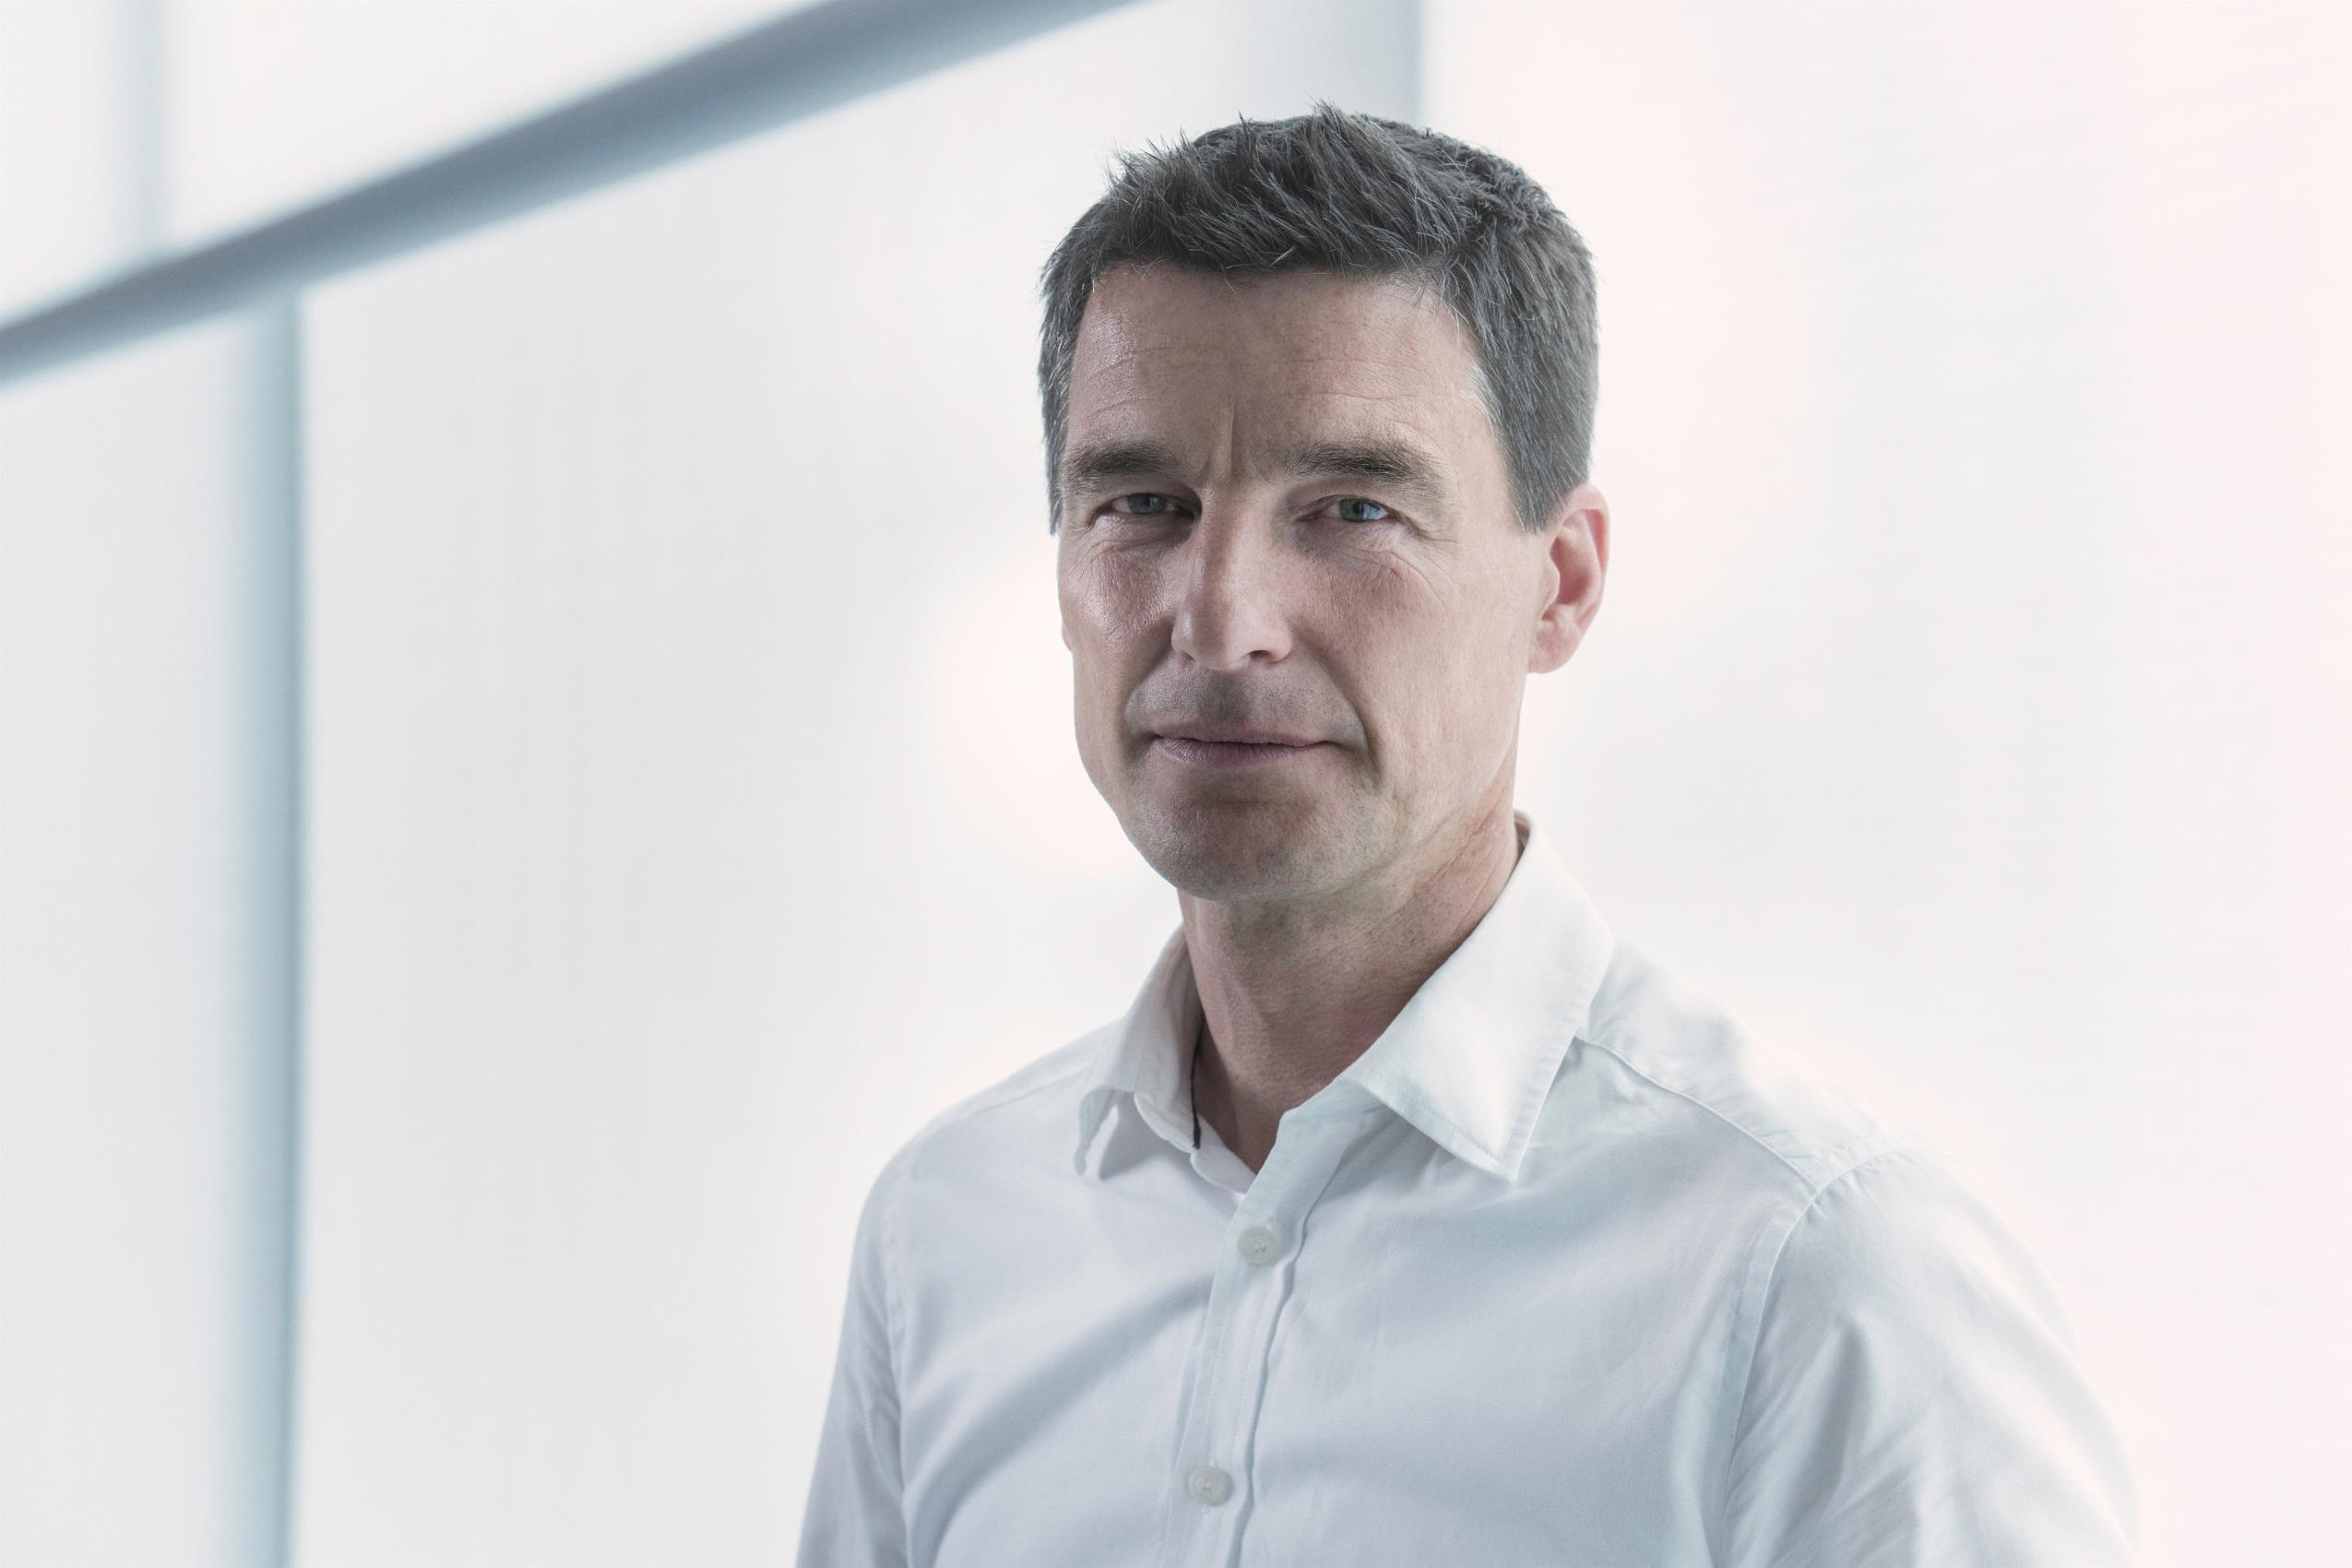 Thomas Ingenlath, Senior Vice President Design at Volvo, will assume the position of Chief Executive Officer at Polestar.